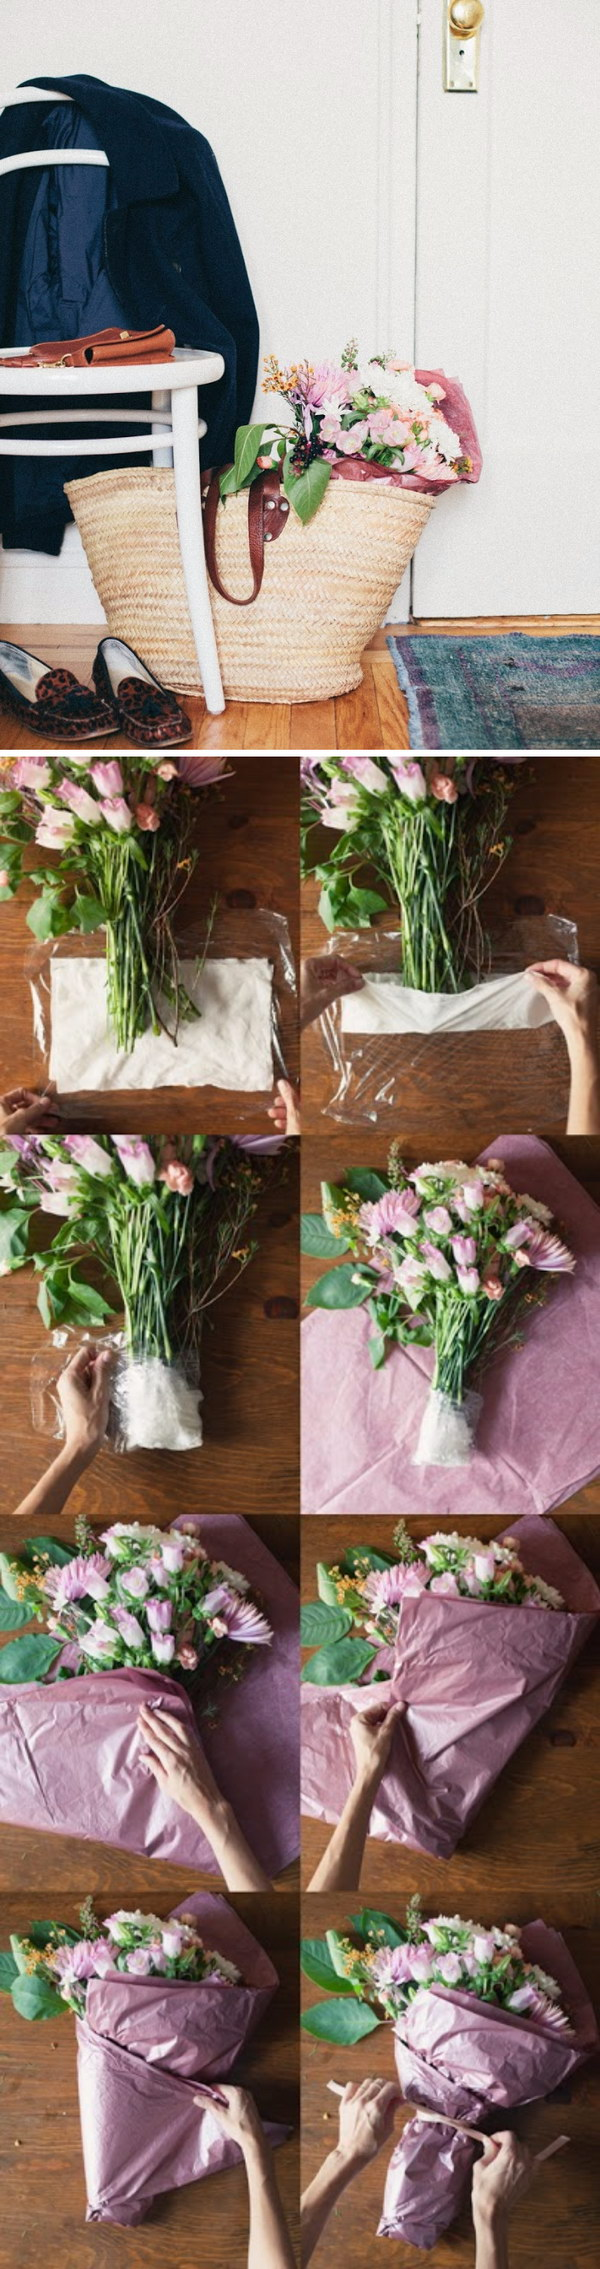 DIY Flower Arrangement In A Basket.